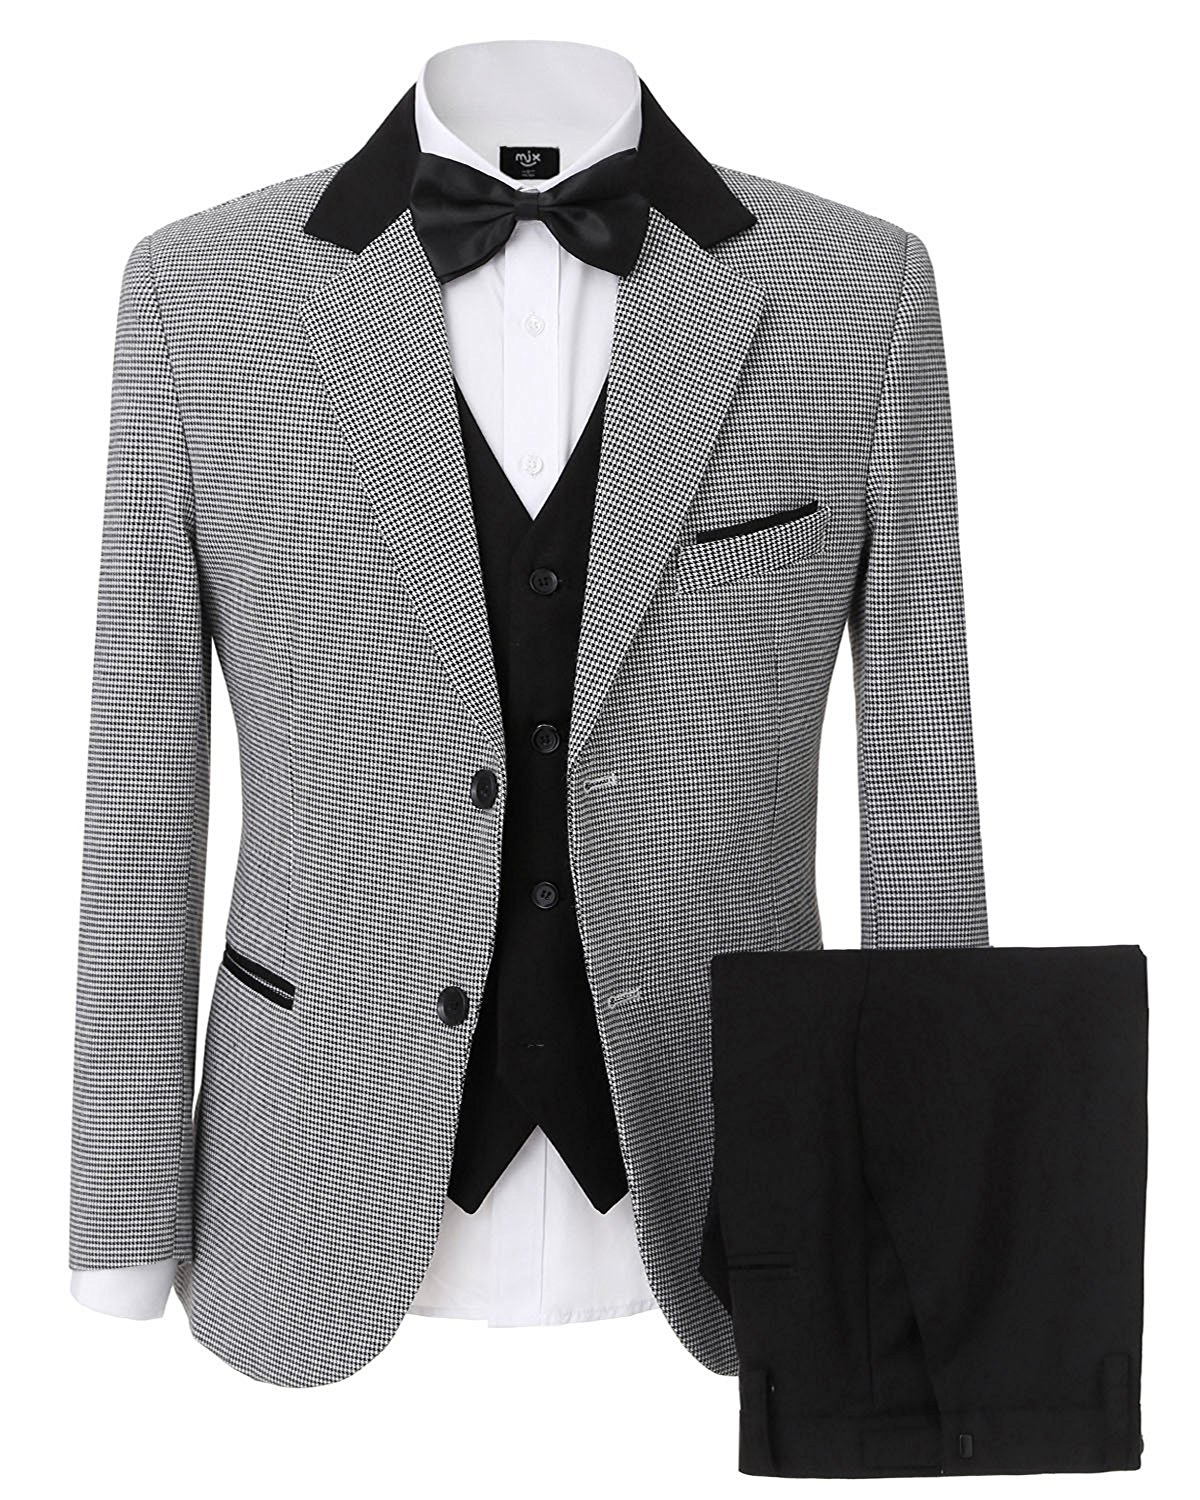 8106569bd2b9 Get Quotations · Pretygirl Men s Clothing Causal Men Suit Tailor Blazer  Suits Slim Fit Jacket and Trousers